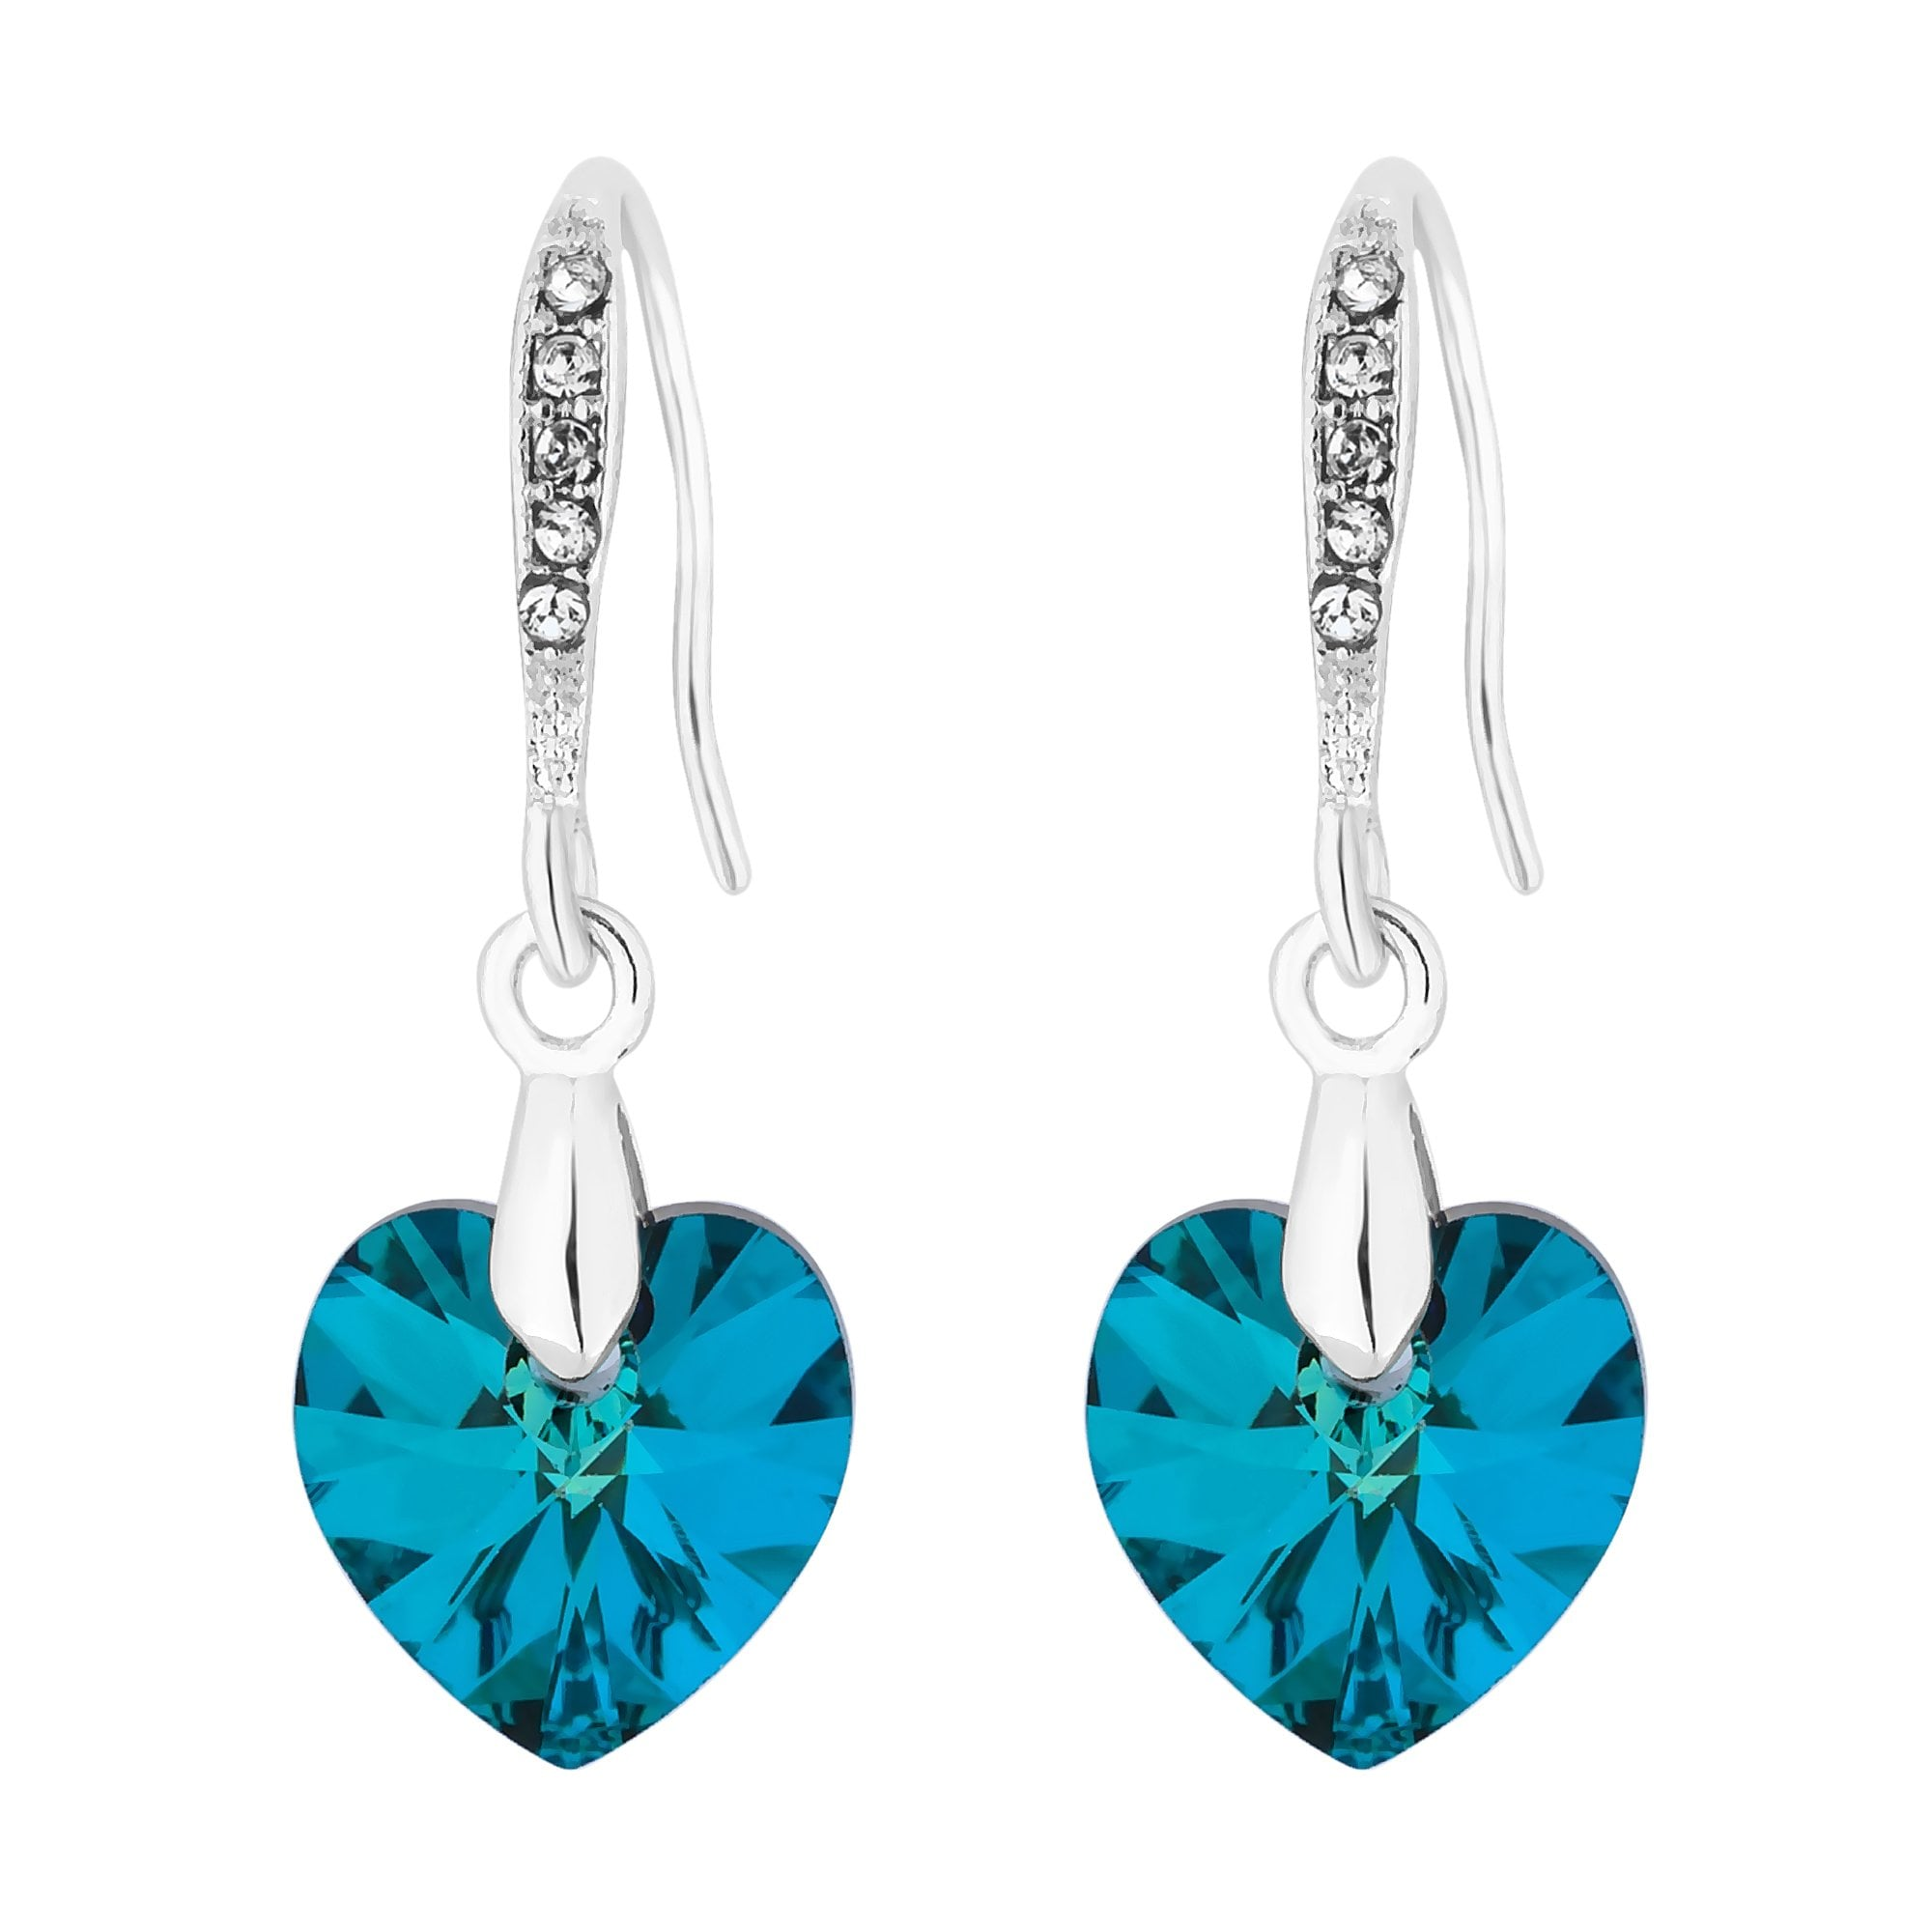 0efbab9c3f659 Silver Plated Blue Heart Drop Earring Embellished With Swarovski® Crystals